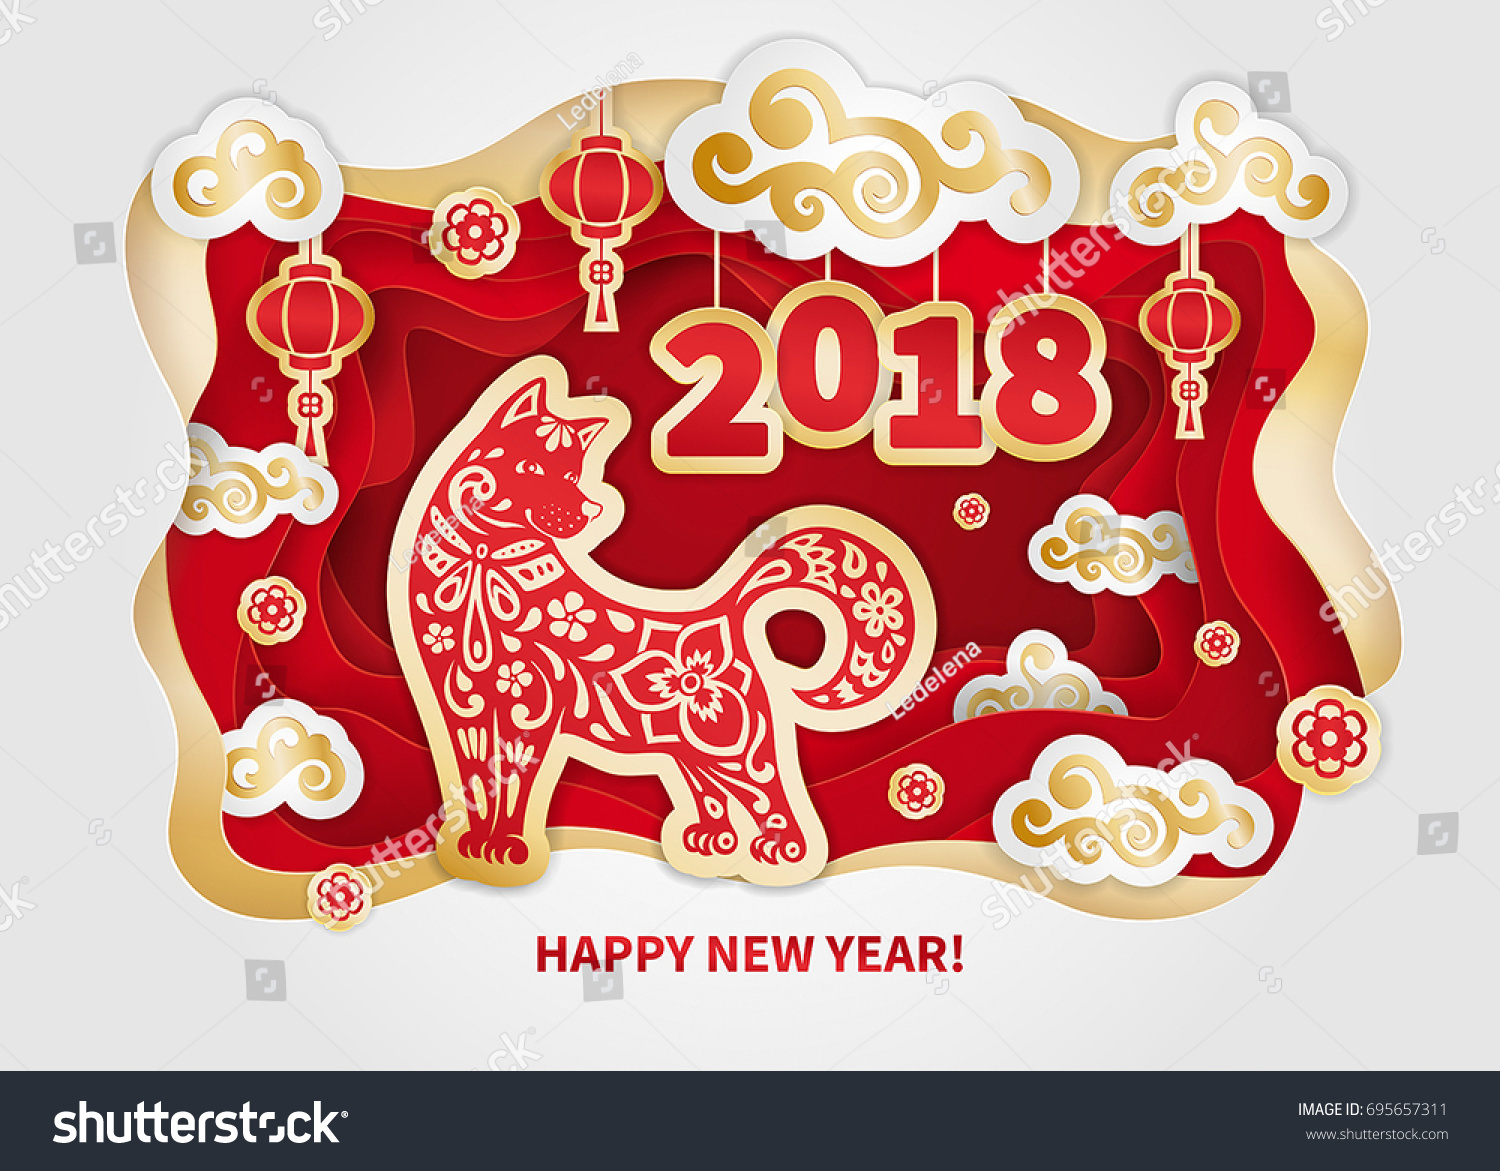 dog symbol 2018 chinese new year stock vector 695657311 shutterstock. Black Bedroom Furniture Sets. Home Design Ideas